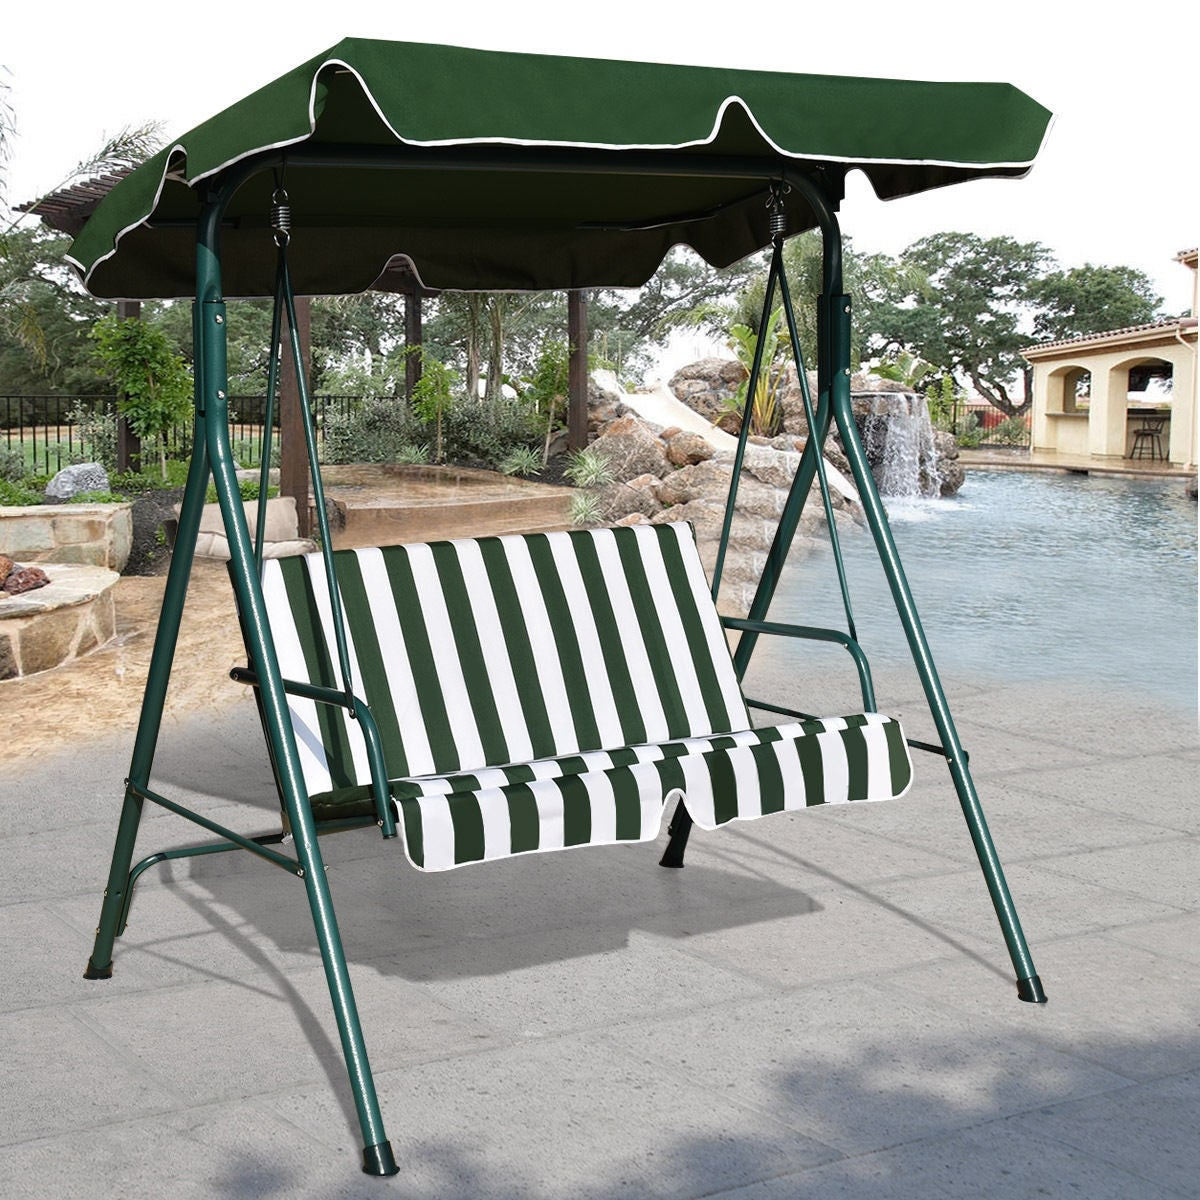 Costway Loveseat Patio Canopy Swing Glider Hammock Cushioned Steel Frame Outdoor Green